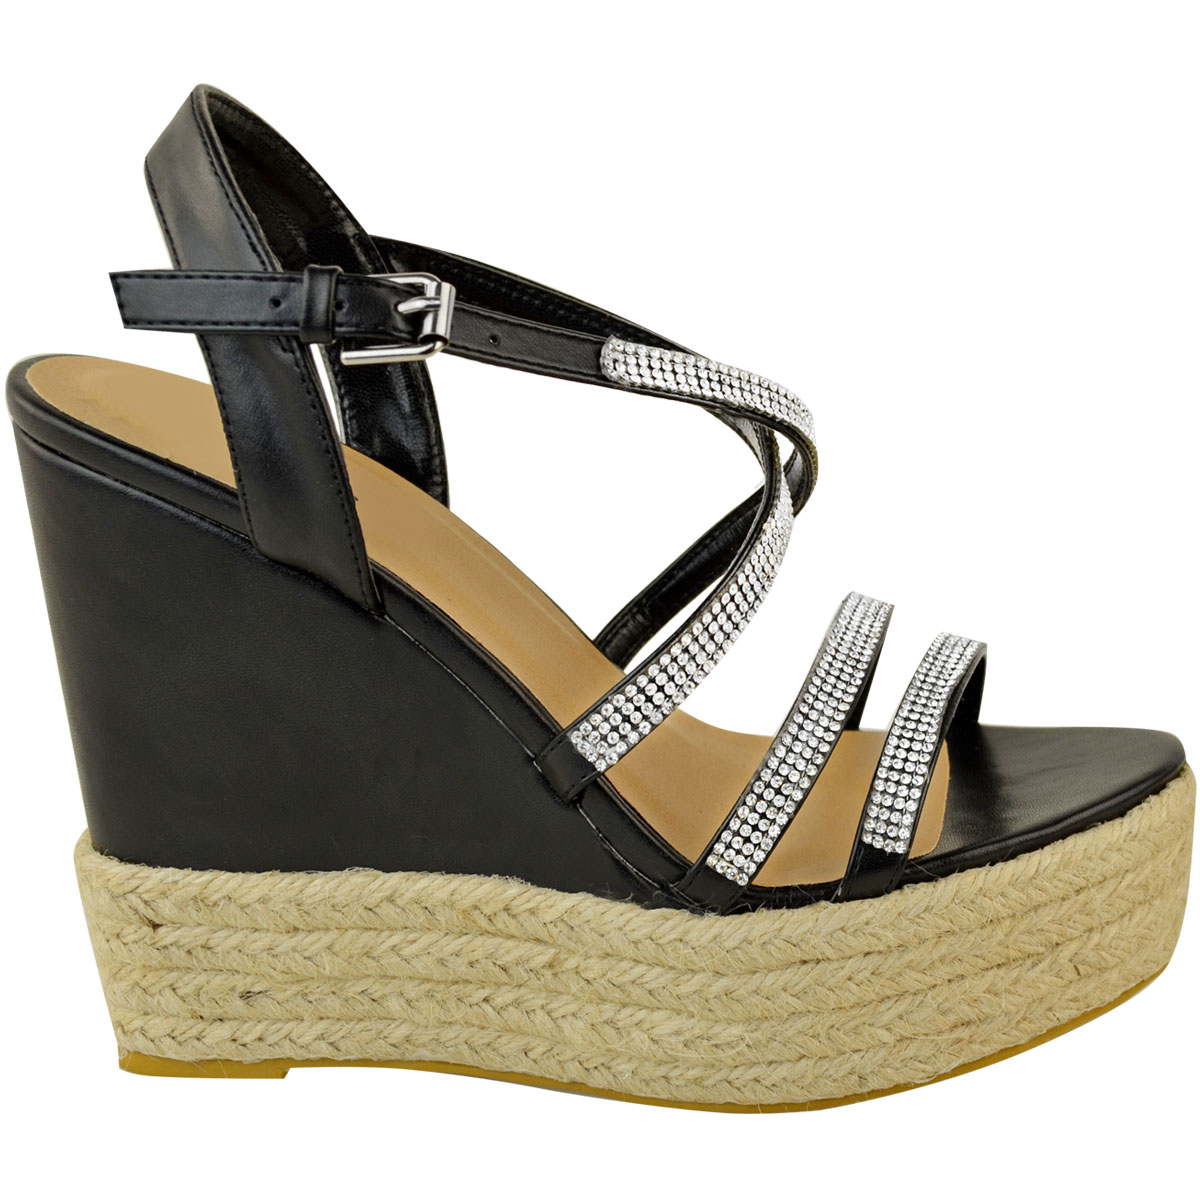 Womens-Ladies-Strappy-Diamante-Wedge-High-Heels-Sandals-Platforms-Shoes-Size-UK thumbnail 4